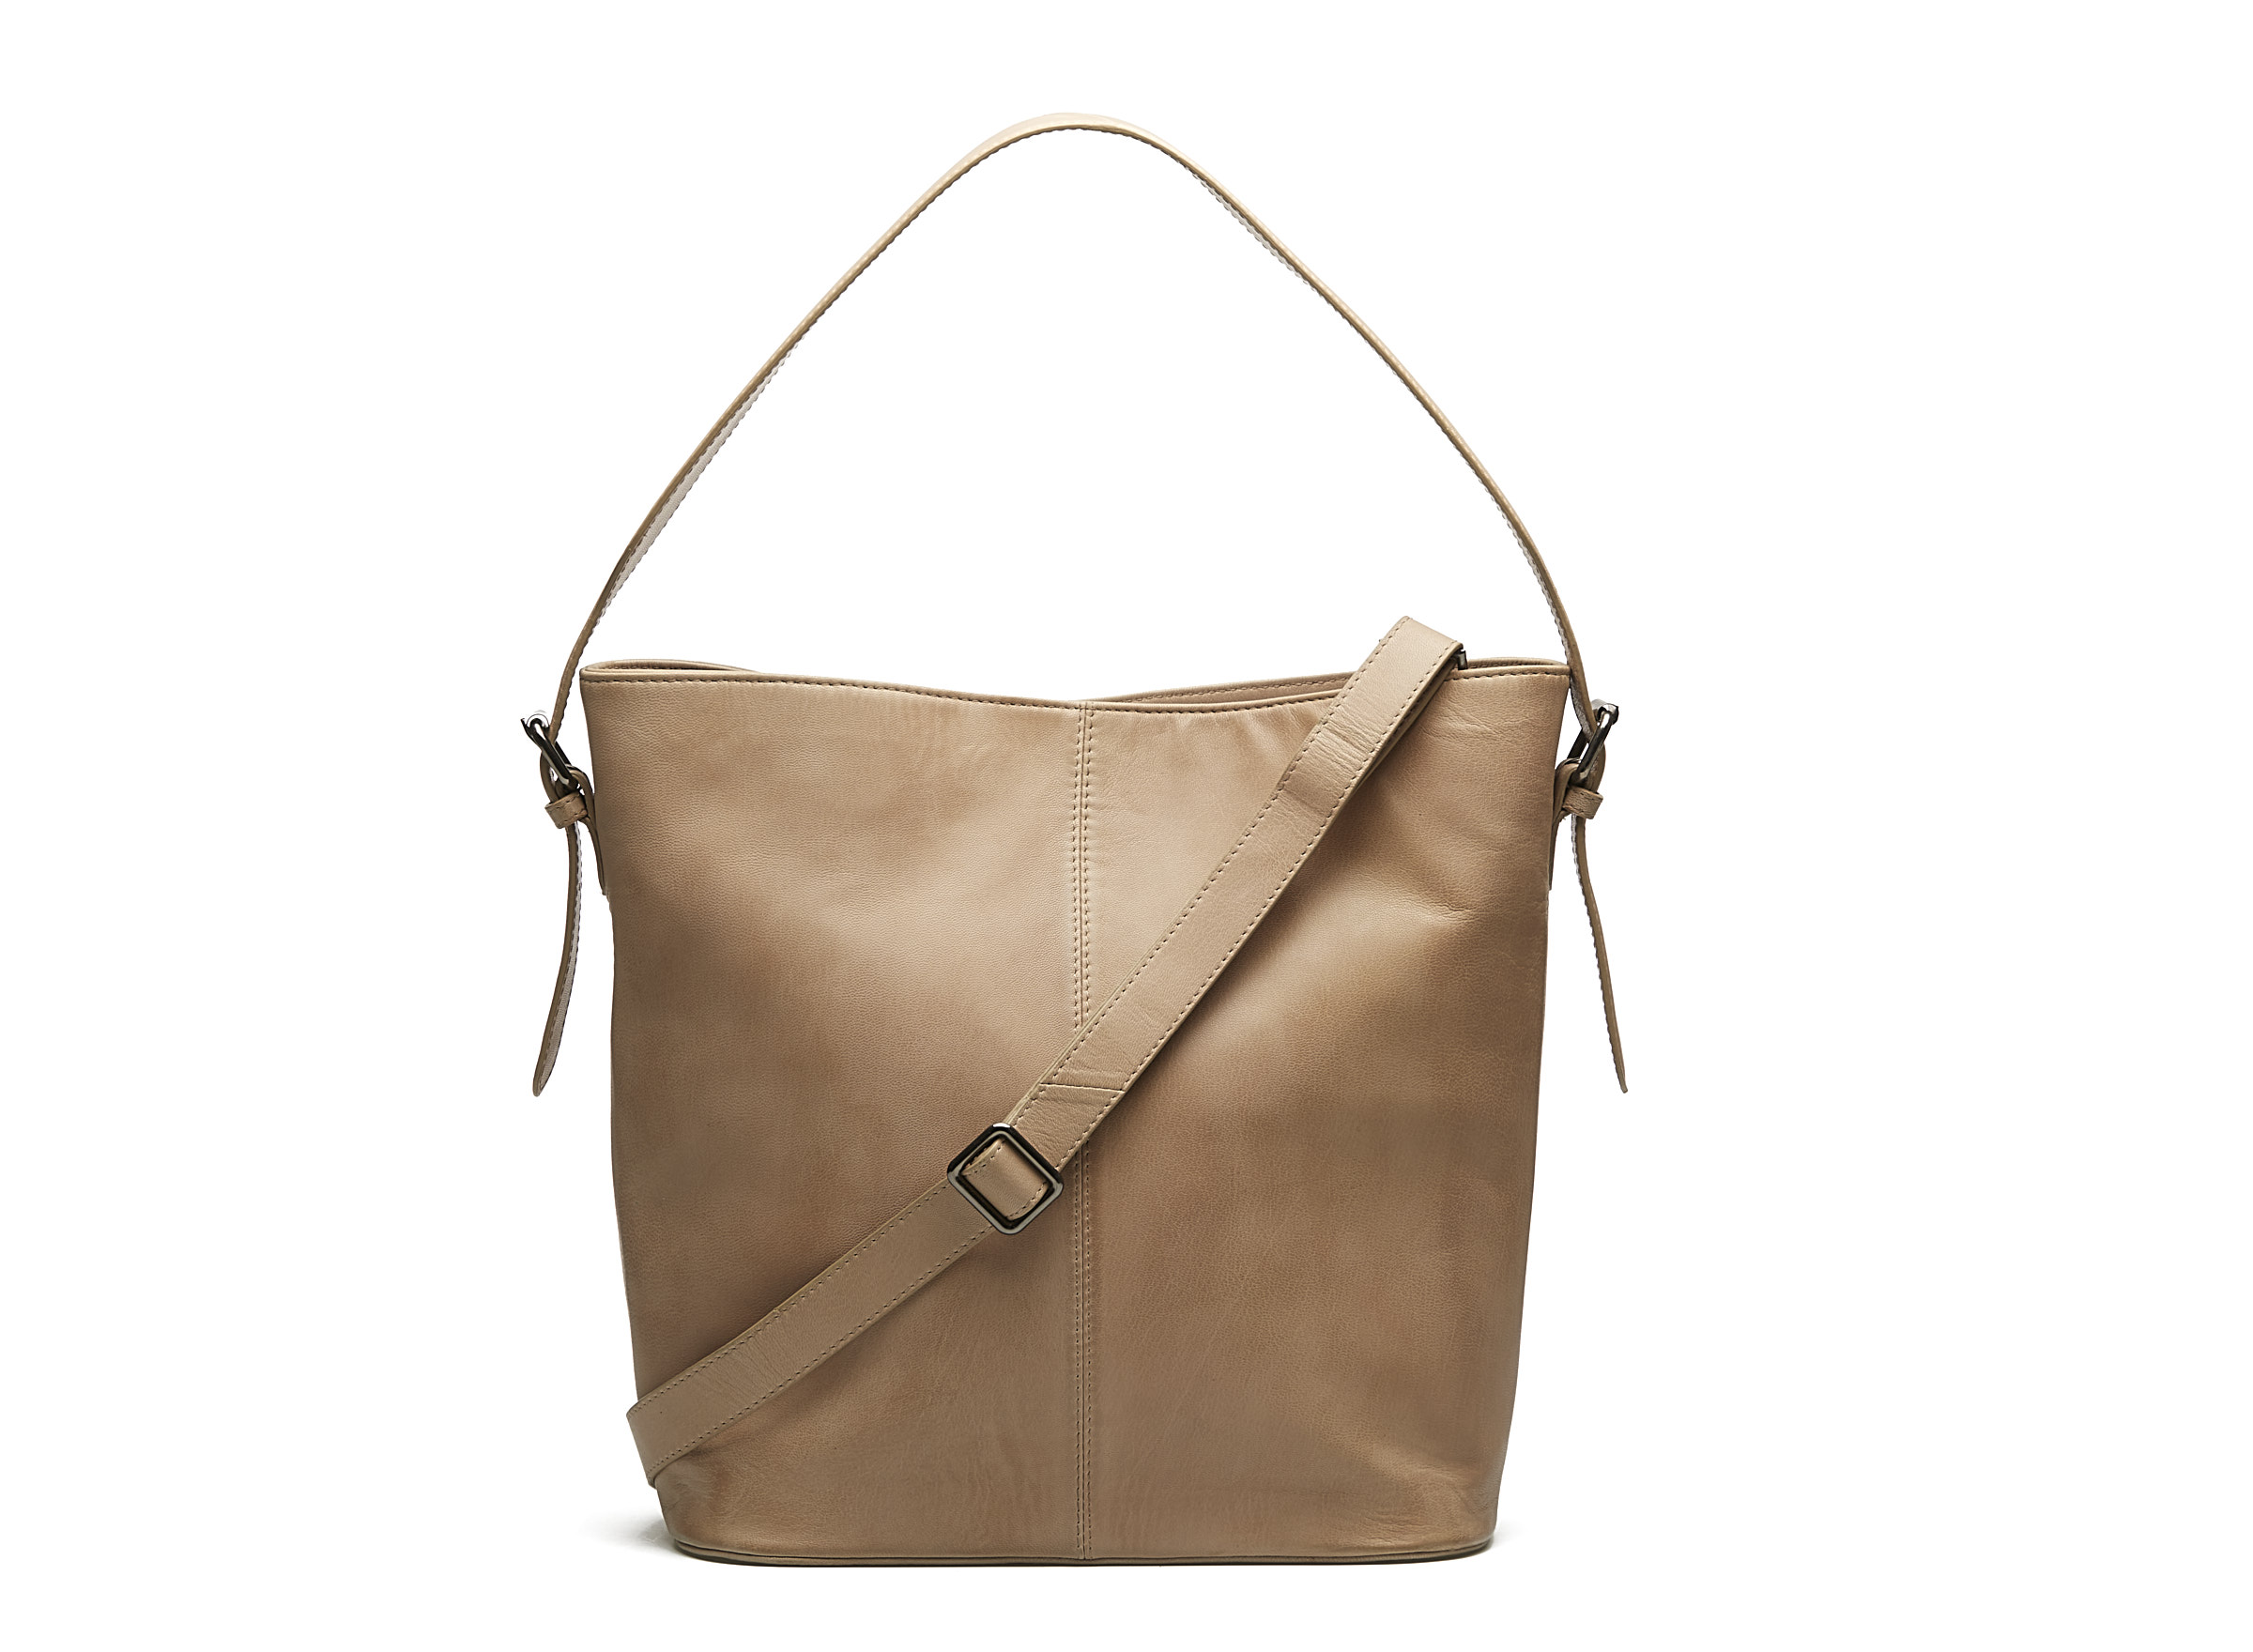 Chabo Bags - Shopper Lucy - Sand